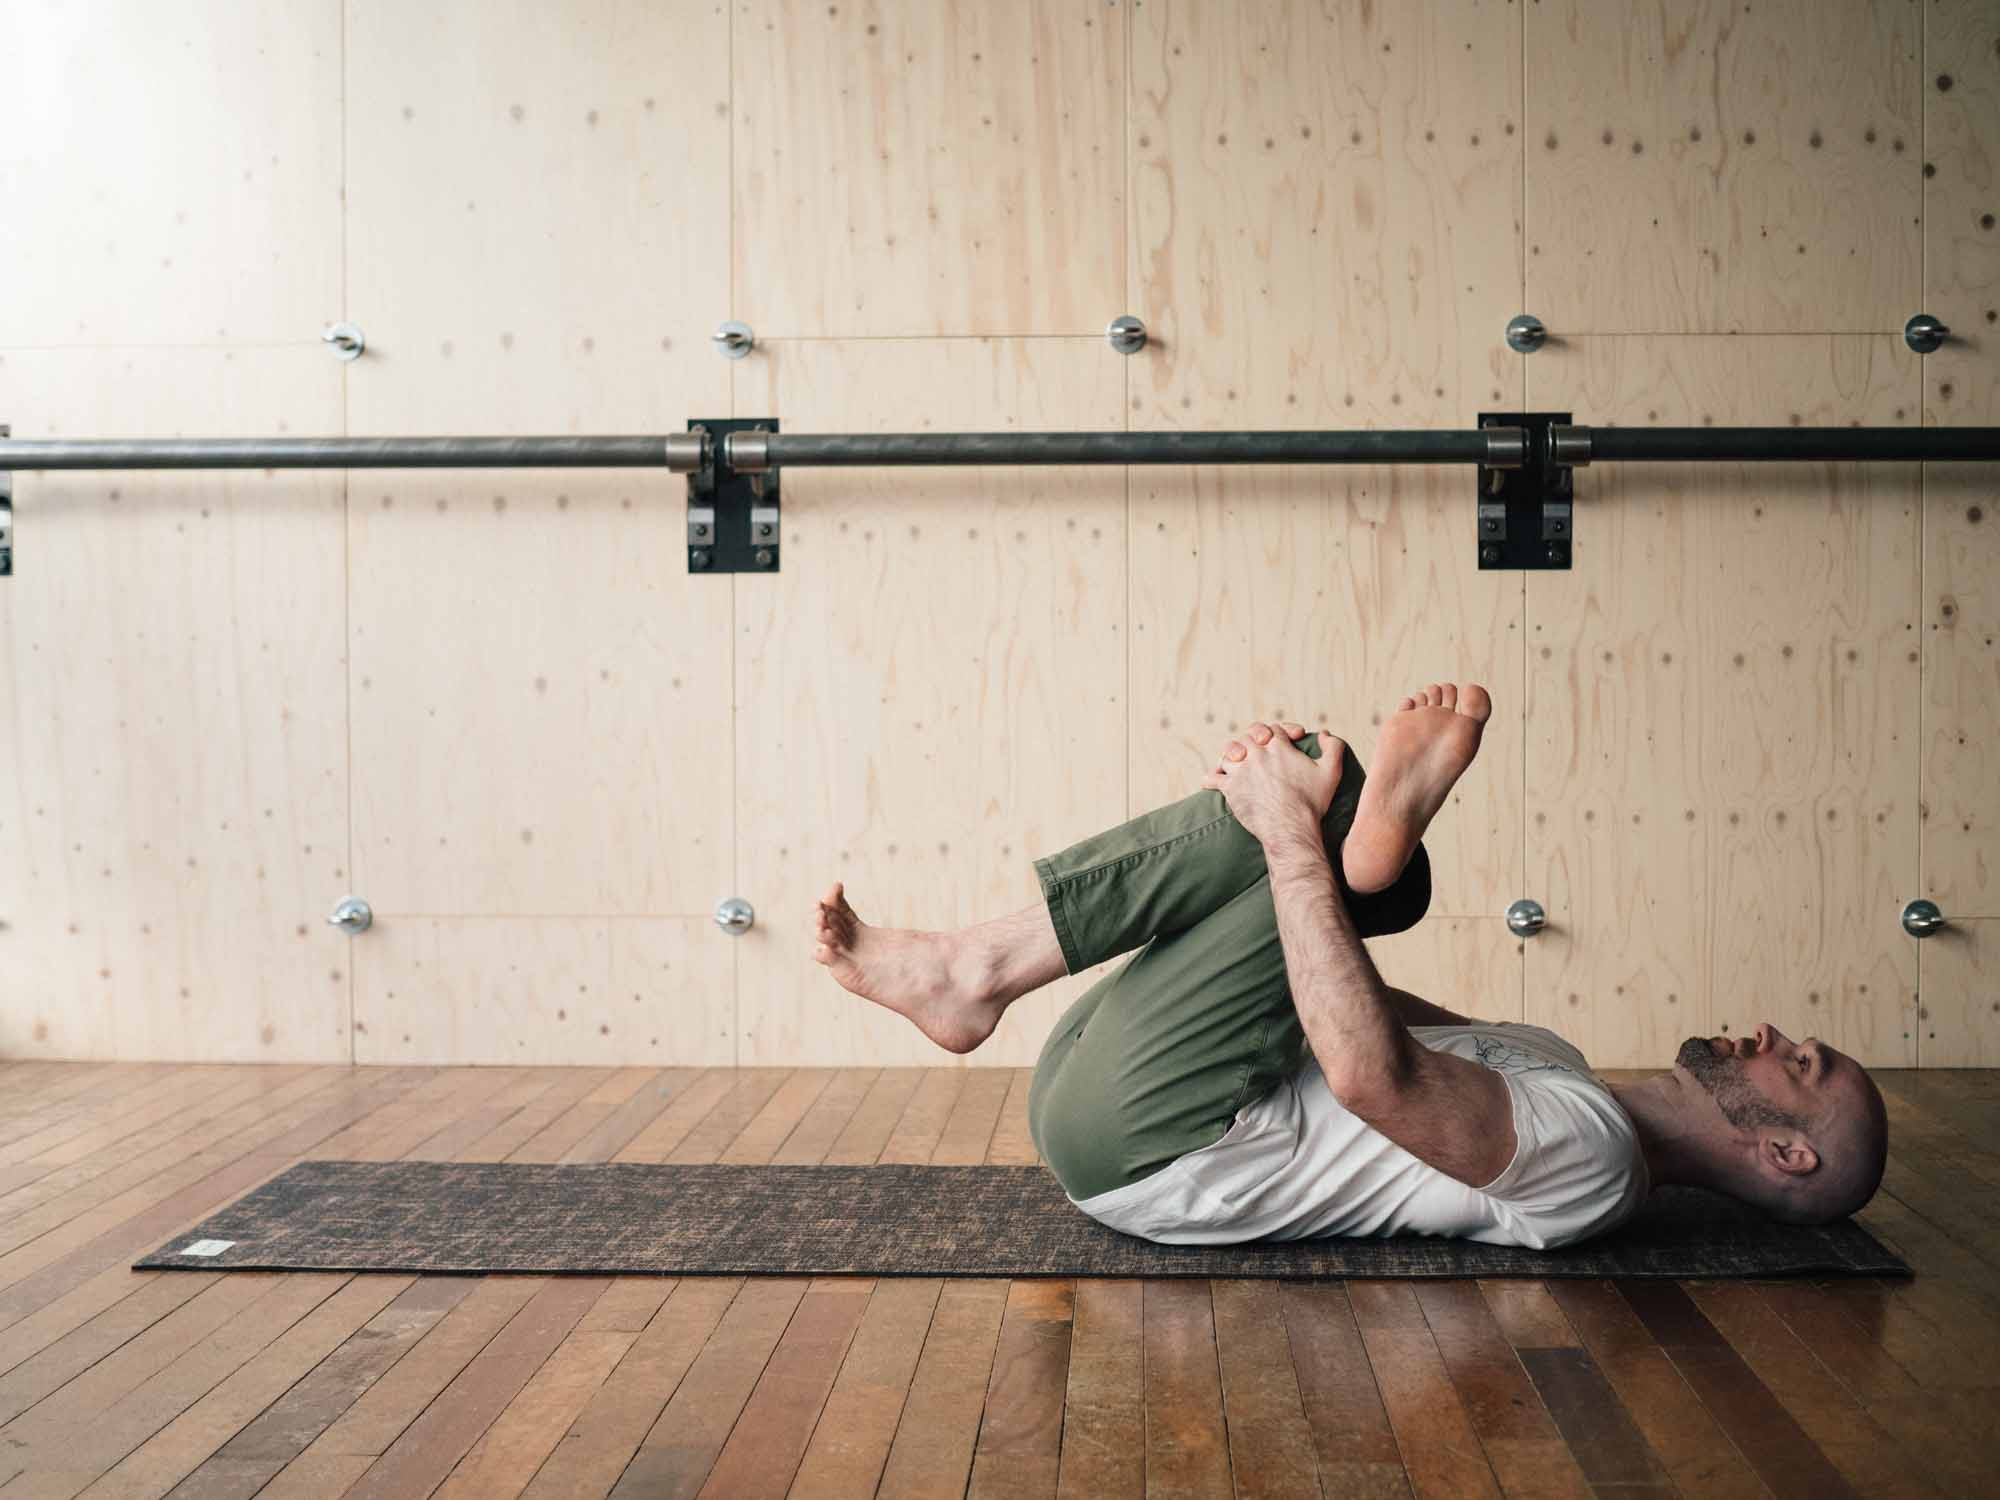 Man doing threading the needle pose in a yoga studio